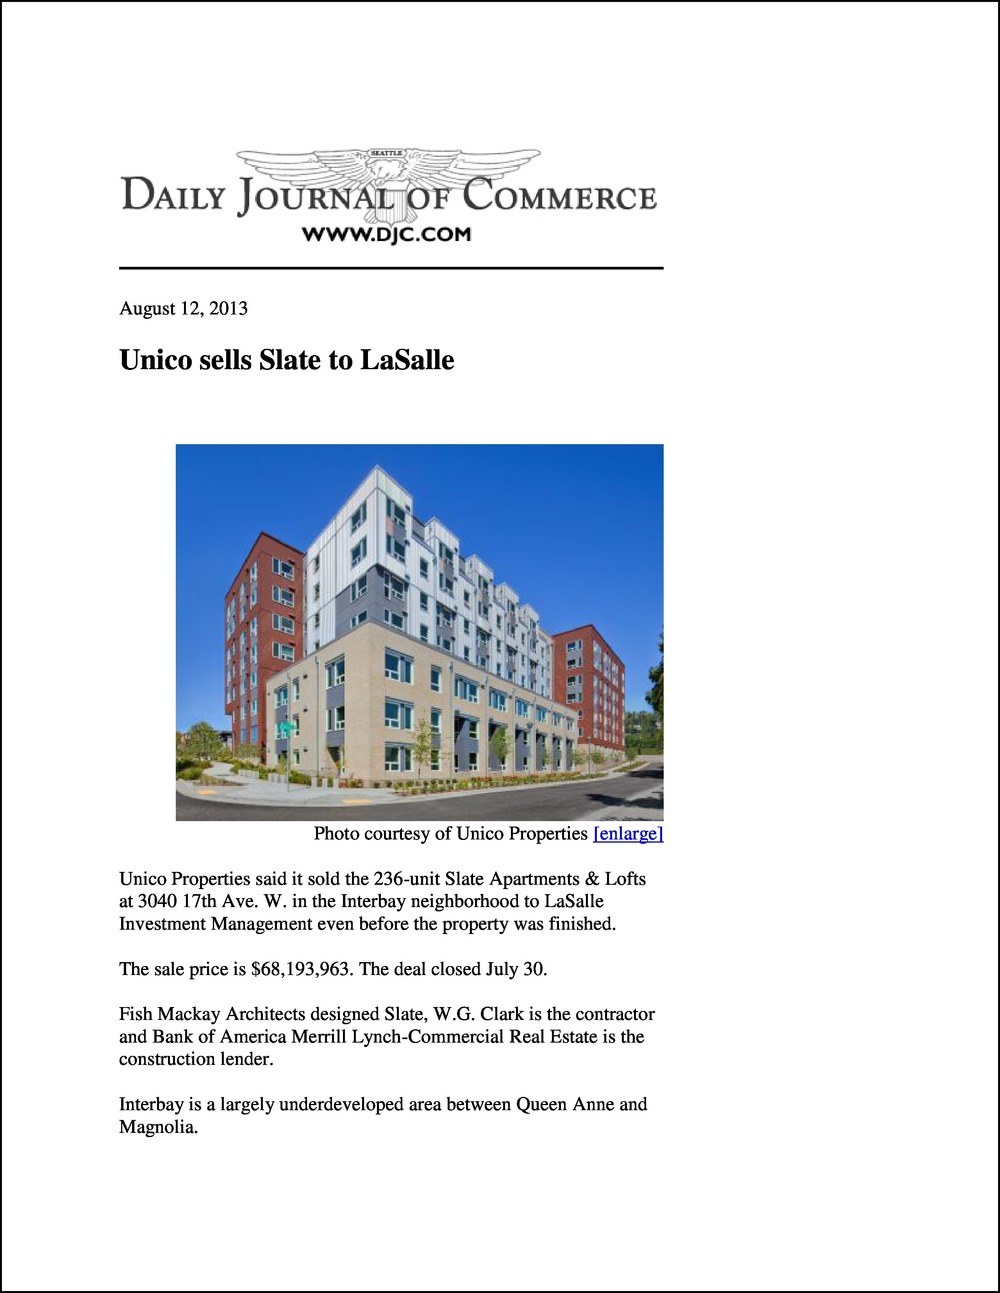 Daily Journal of Commerce 08122013